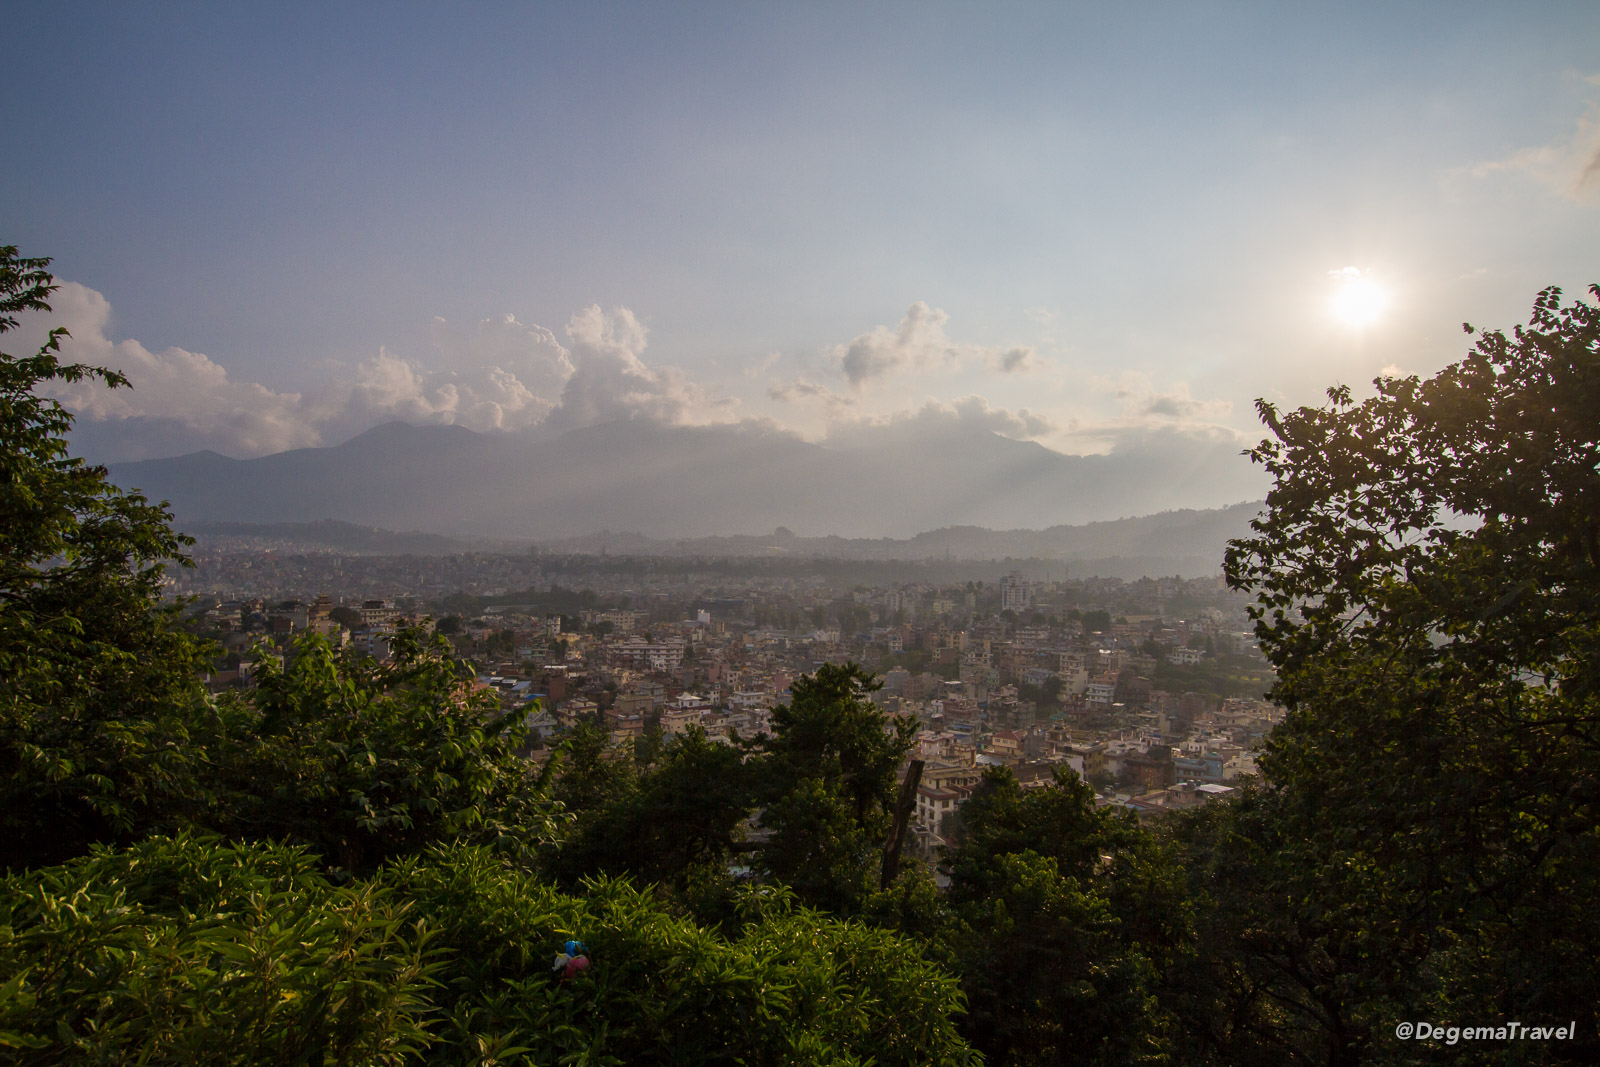 The view from Swayambhu Temple in Kathmandu, Nepal